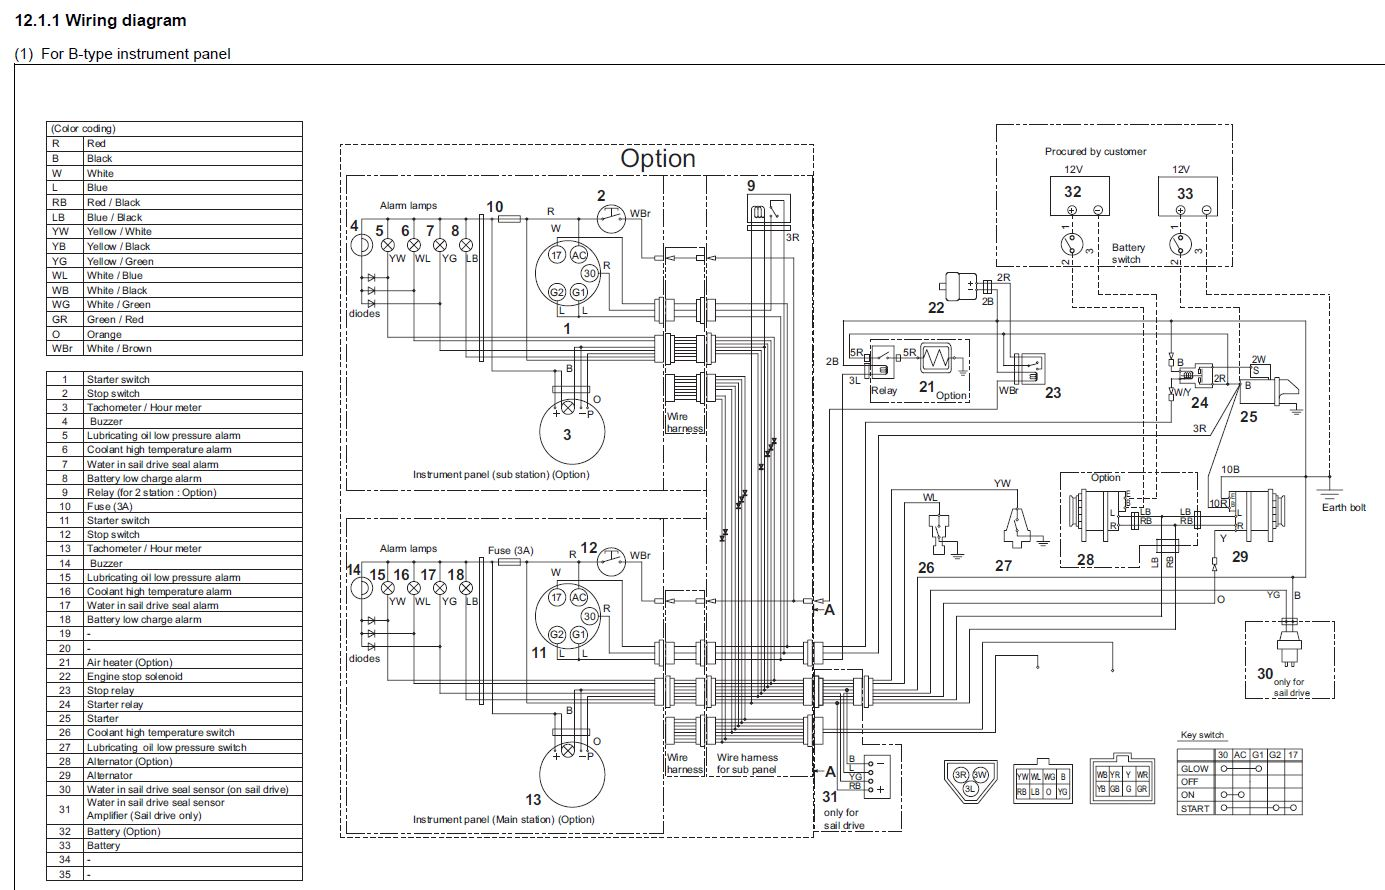 mando marine alternator wiring diagram  u2013 wirdig